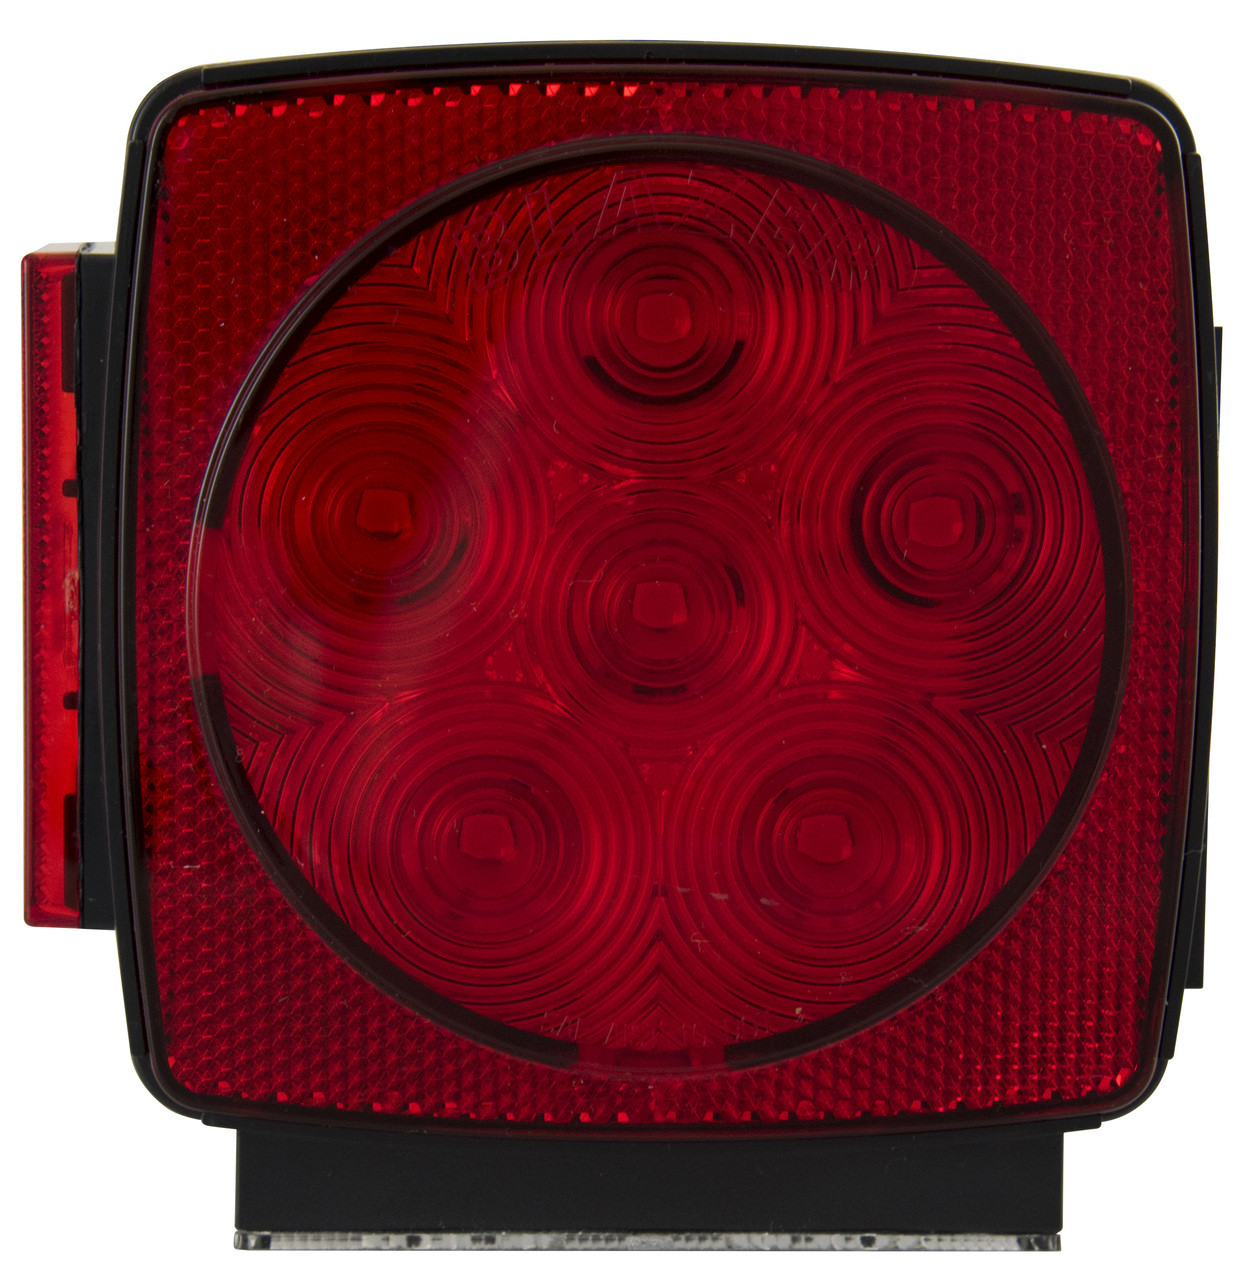 LED440LR6 --- Square Combination Sealed Submersible LED Left Tail Light and Side Marker